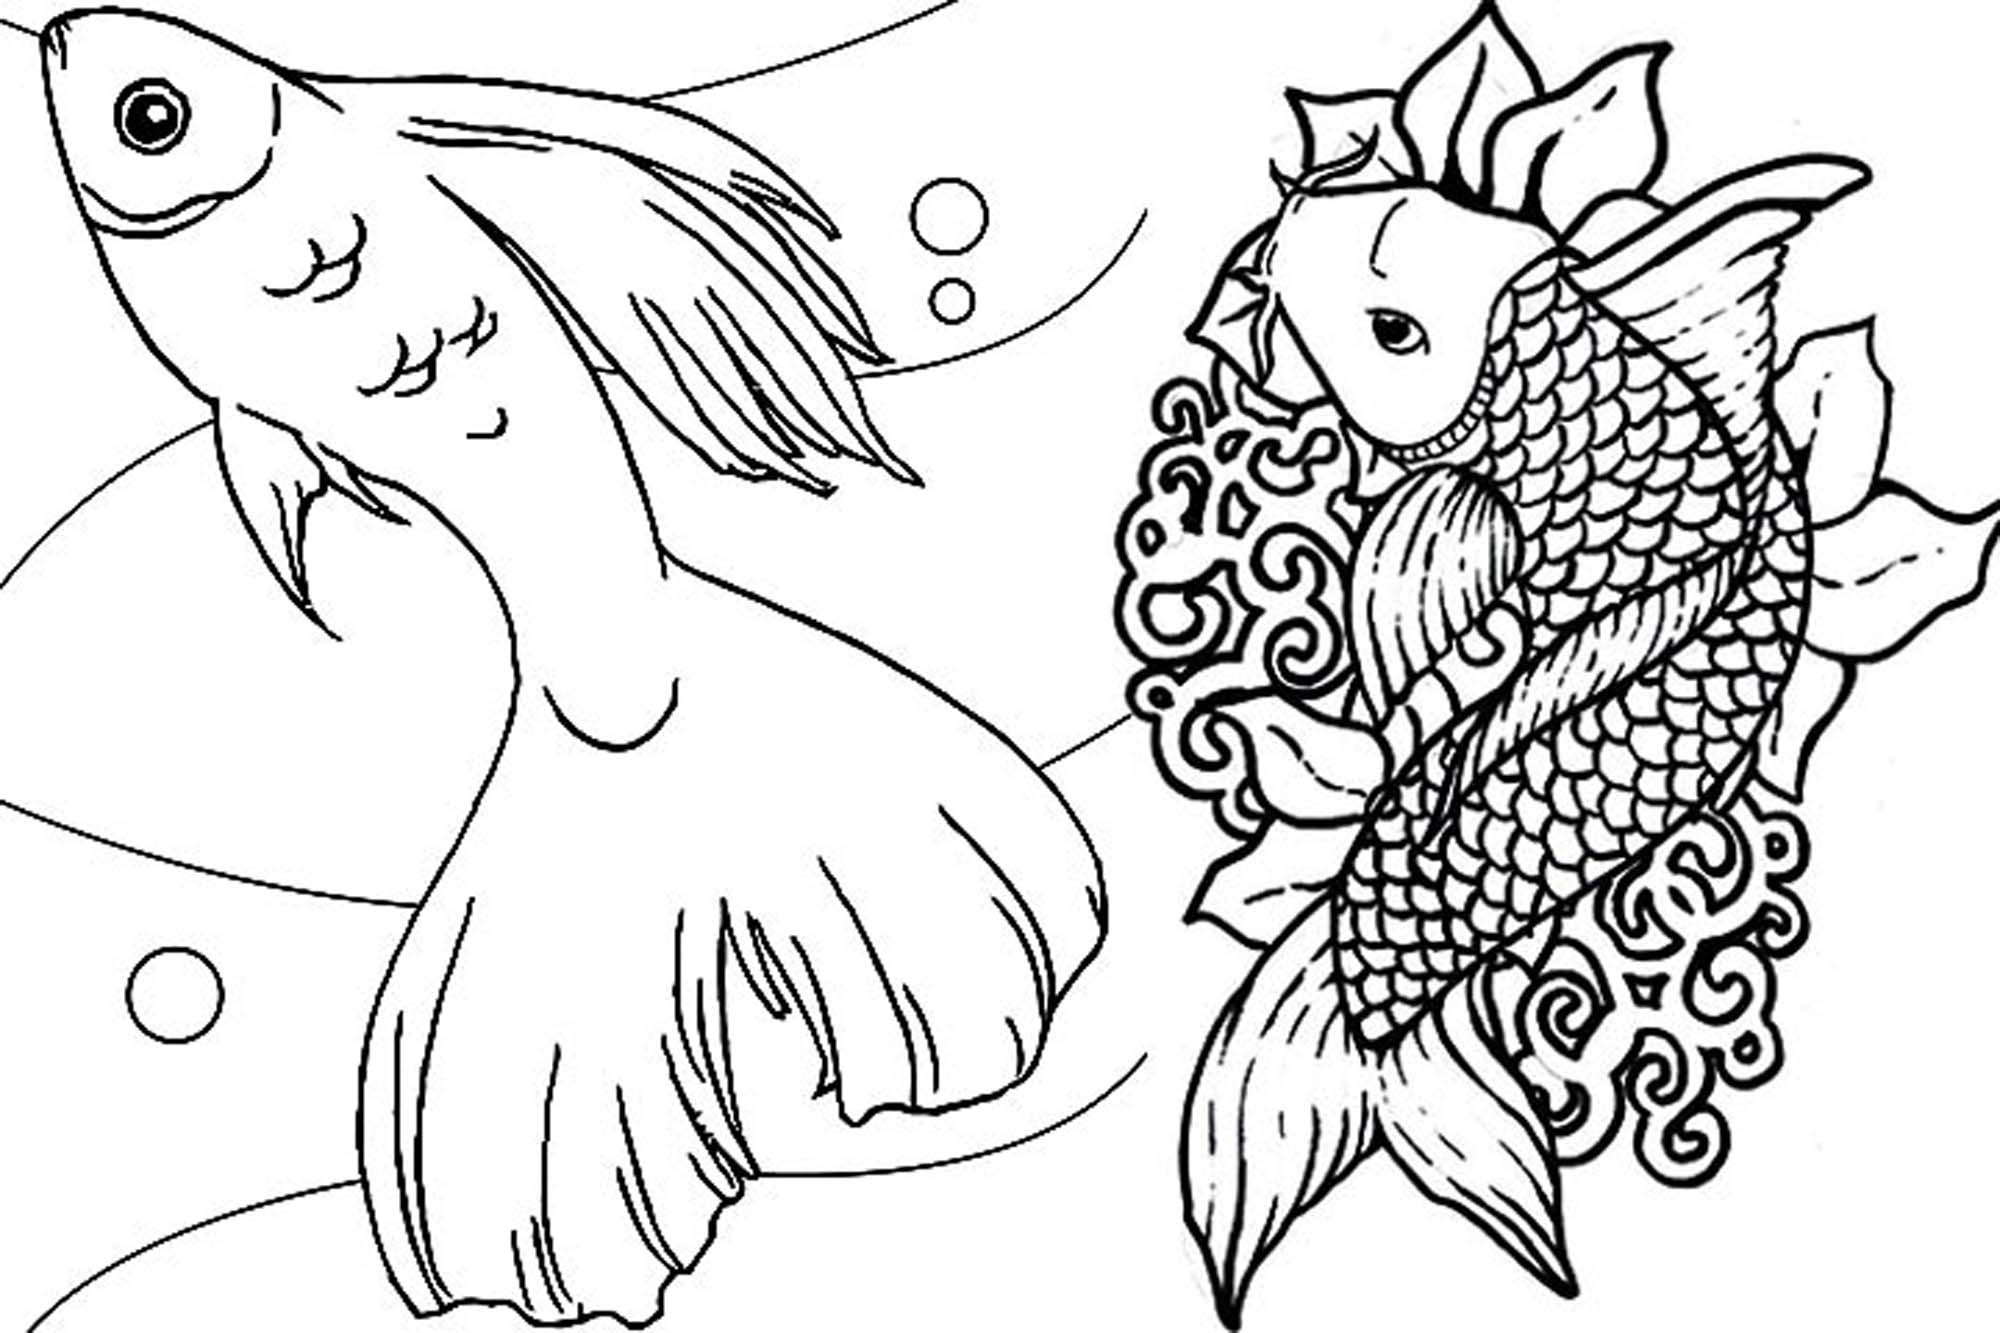 2000x1333 Detailed Fish Coloring Pages Many Interesting Cliparts Striking